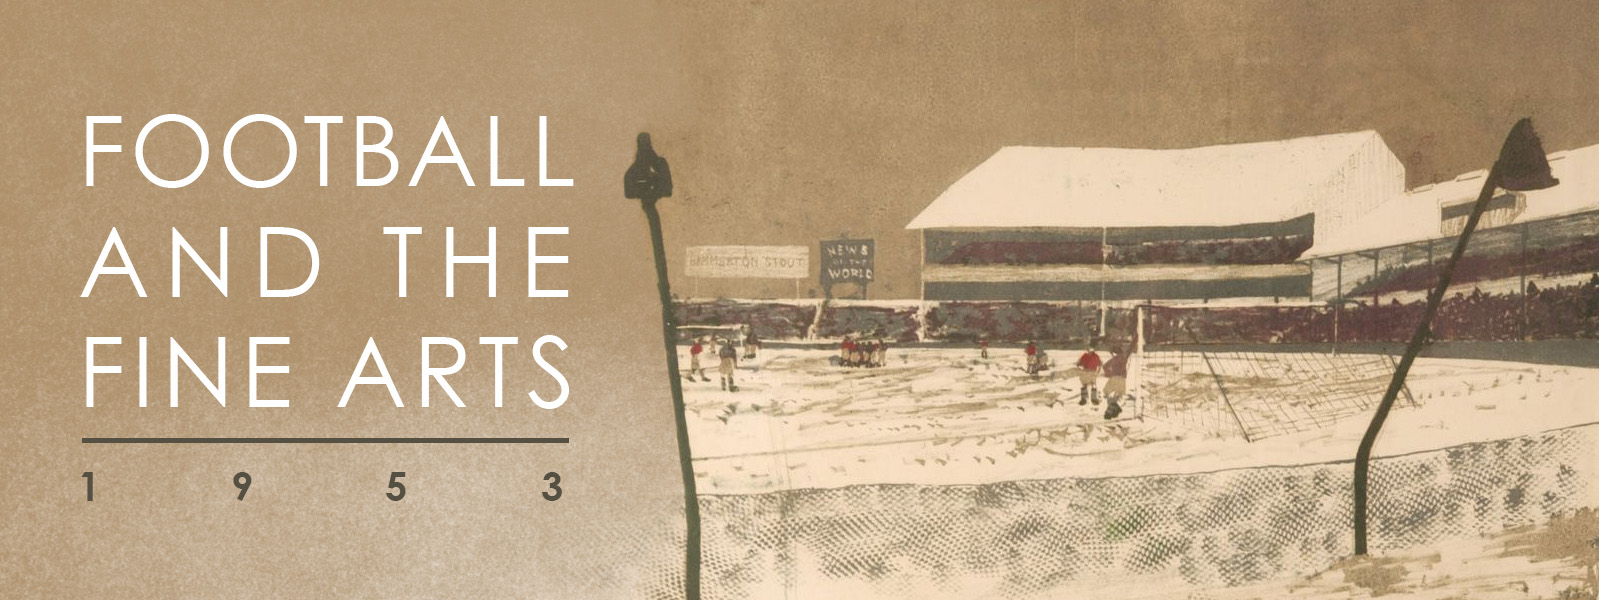 Football and the Fine Arts